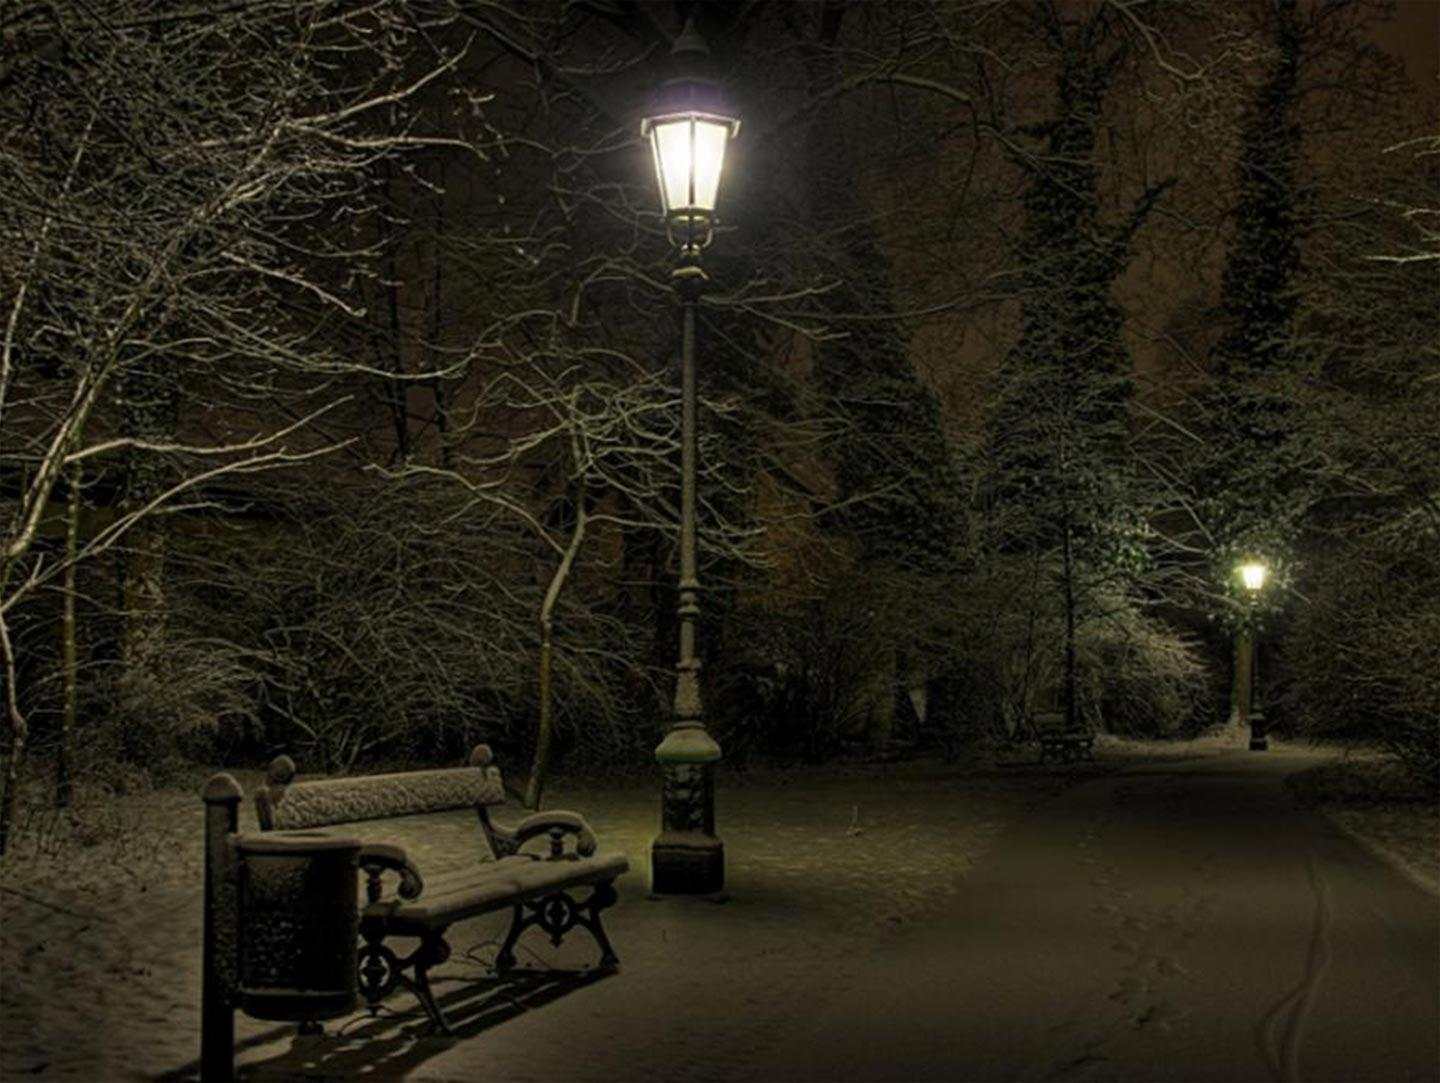 Wallpapers For Gt Winter Night Wallpapers Hd